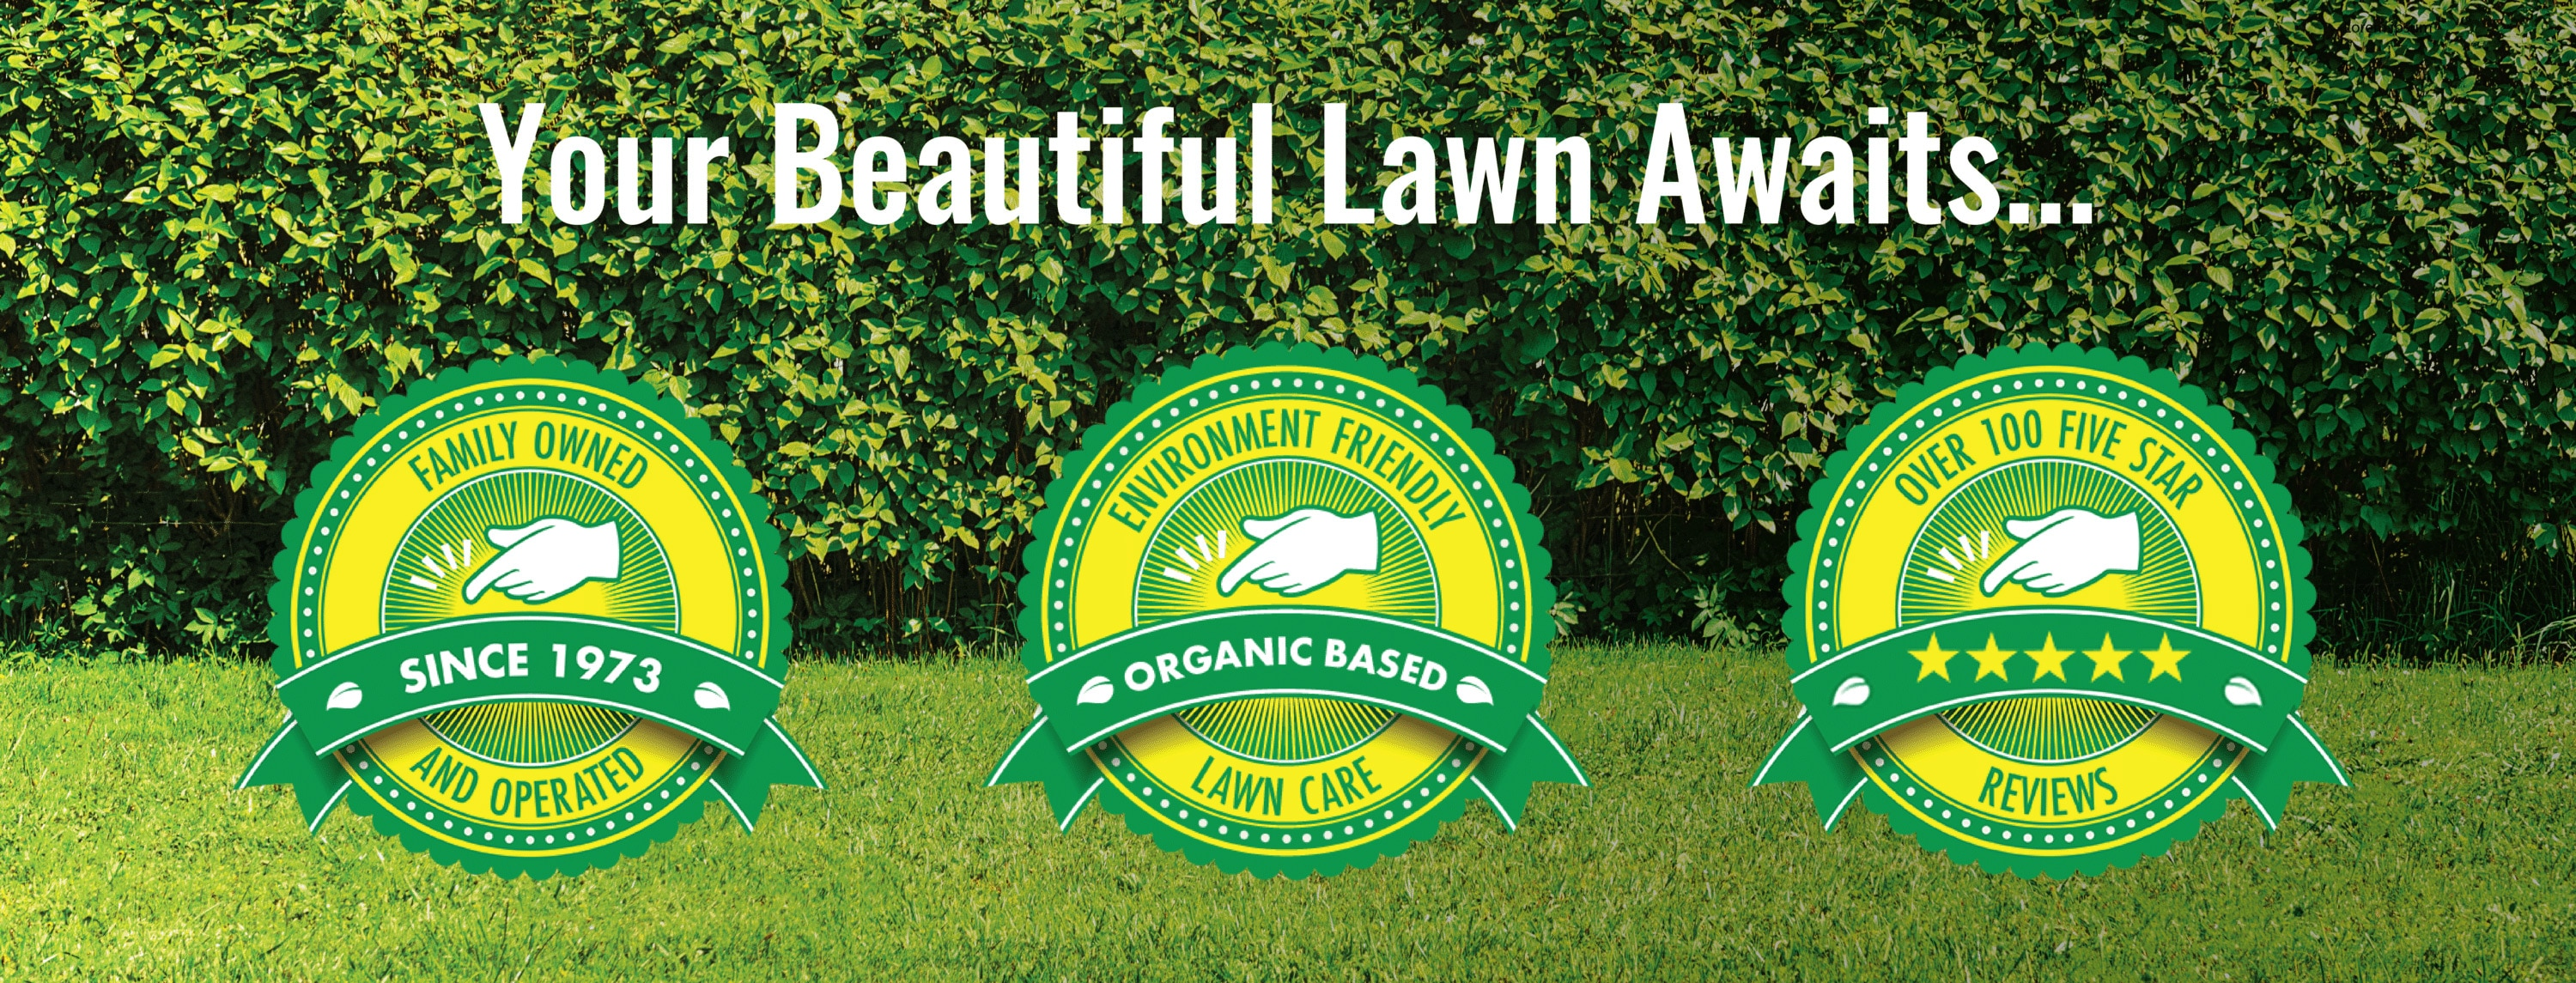 Lawn Care Services Spring Touch Lawn Amp Pest Control